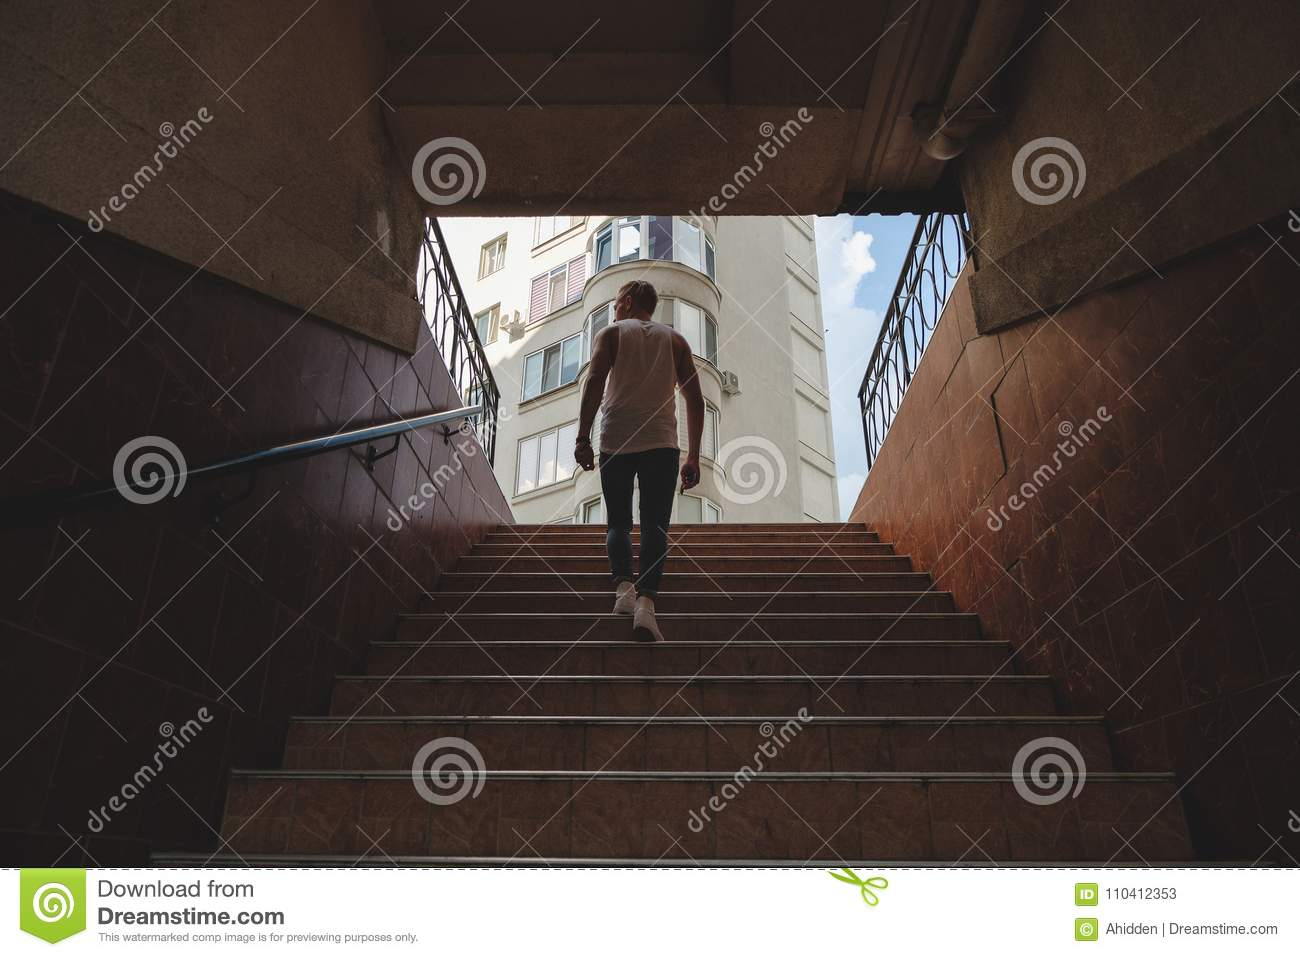 Download Young Man Climbing Stairs In Pedestrian Subway Stock Image - Image of pedestrian, coming: 110412353